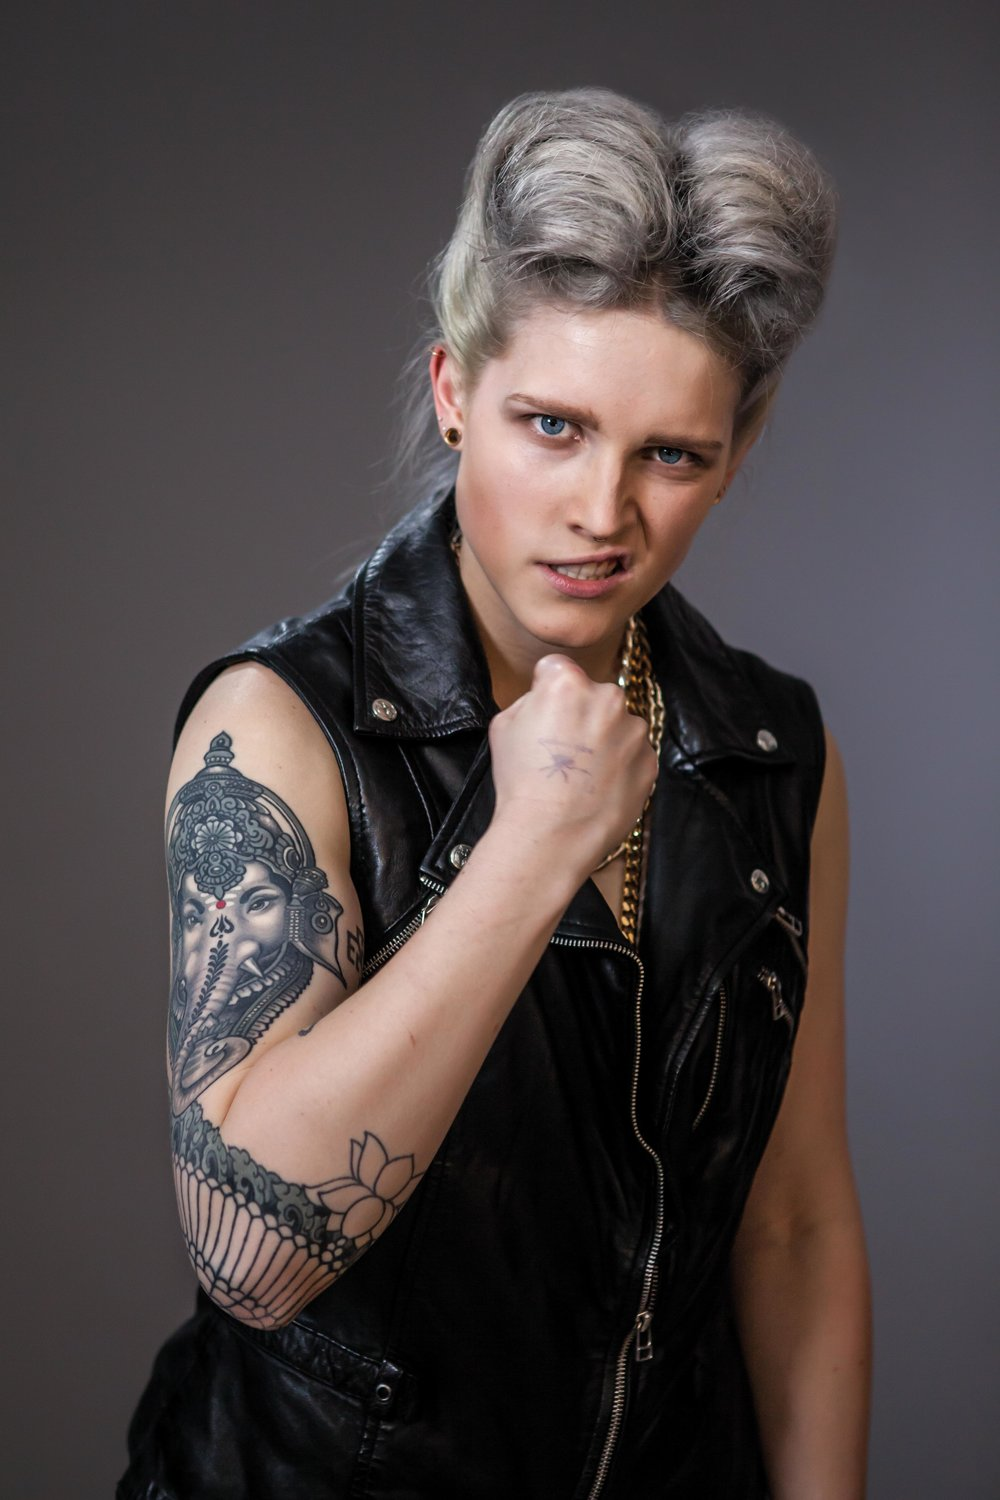 TOM|CO | A TRIBUTE TO MUSIC :: Billy Idol